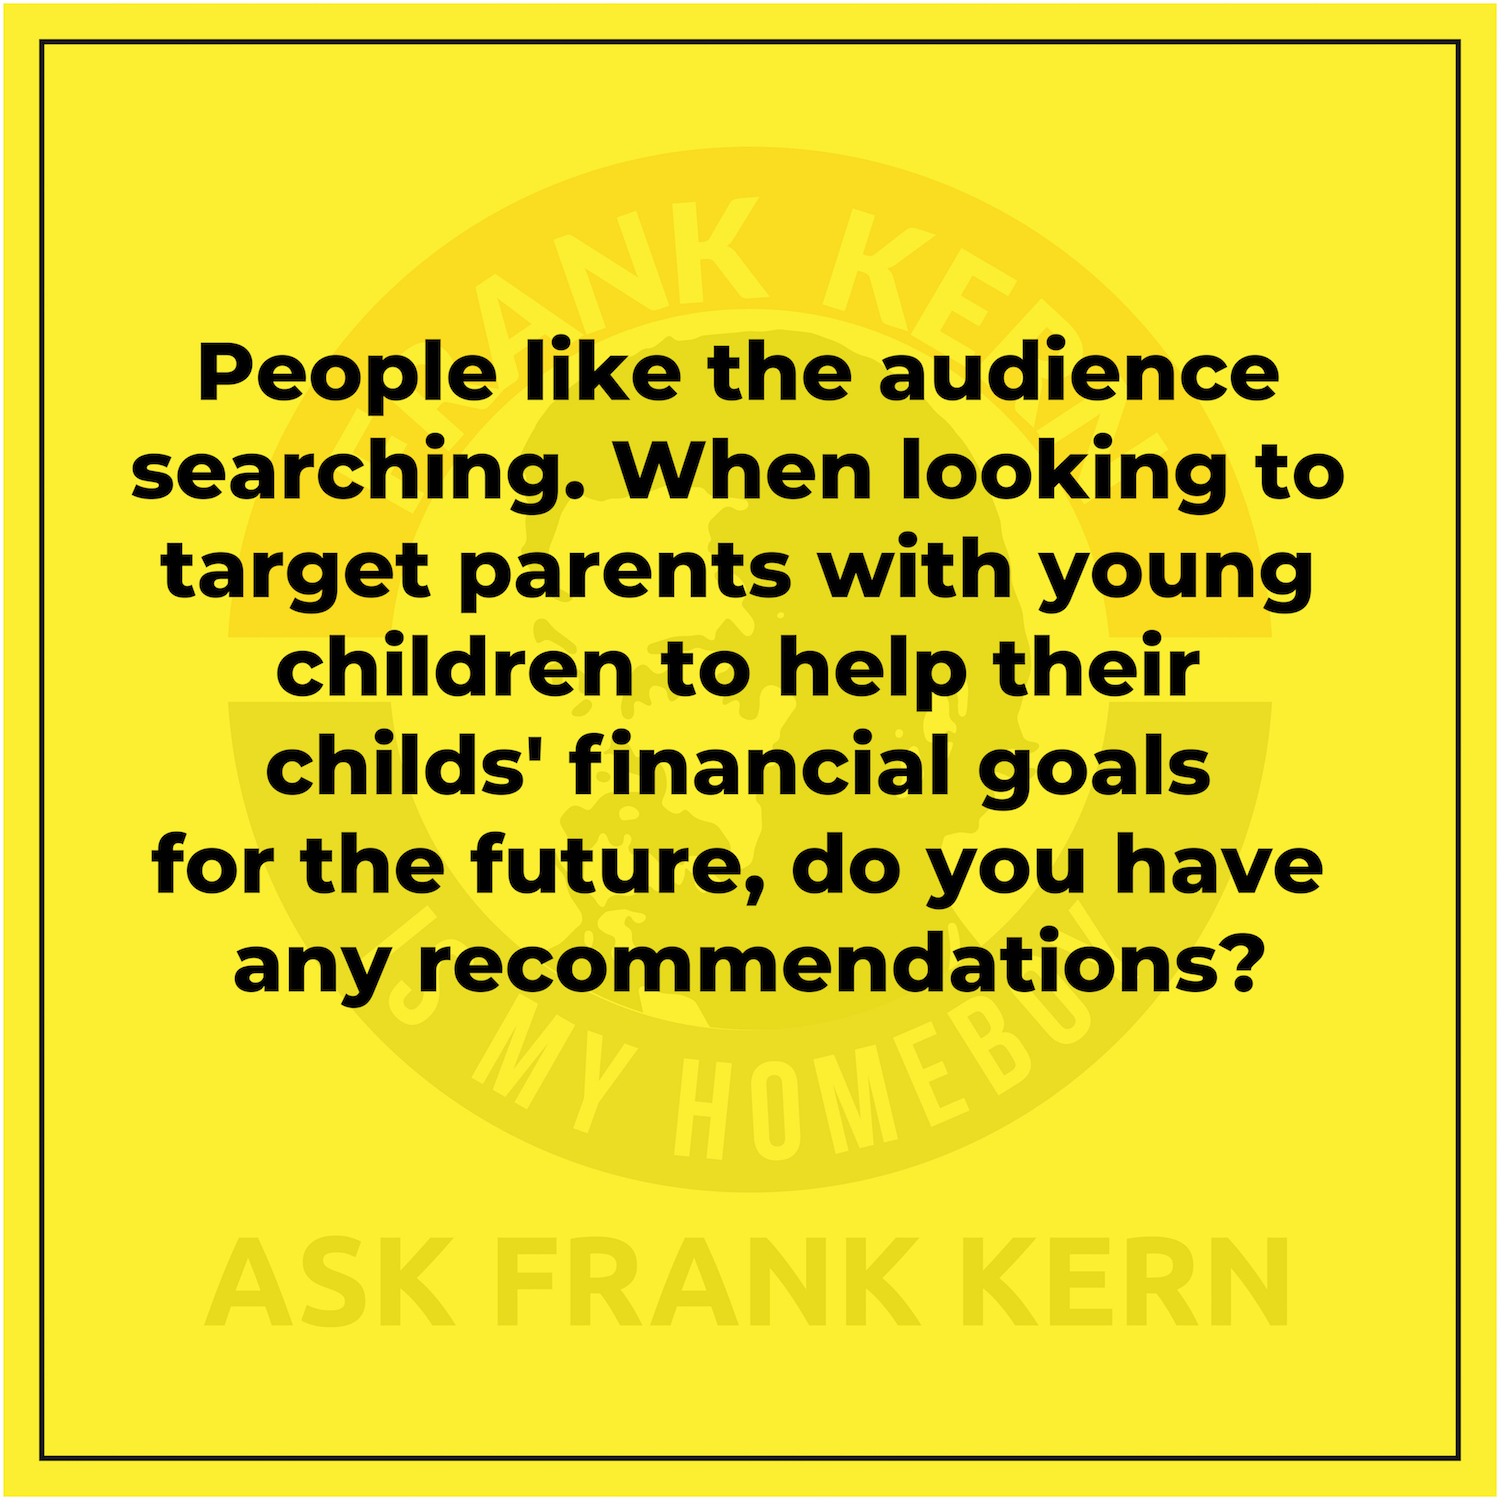 People like the audience searching. When looking to target parents with young children to help their childs' financial goals for the future, do you have any recommendations?